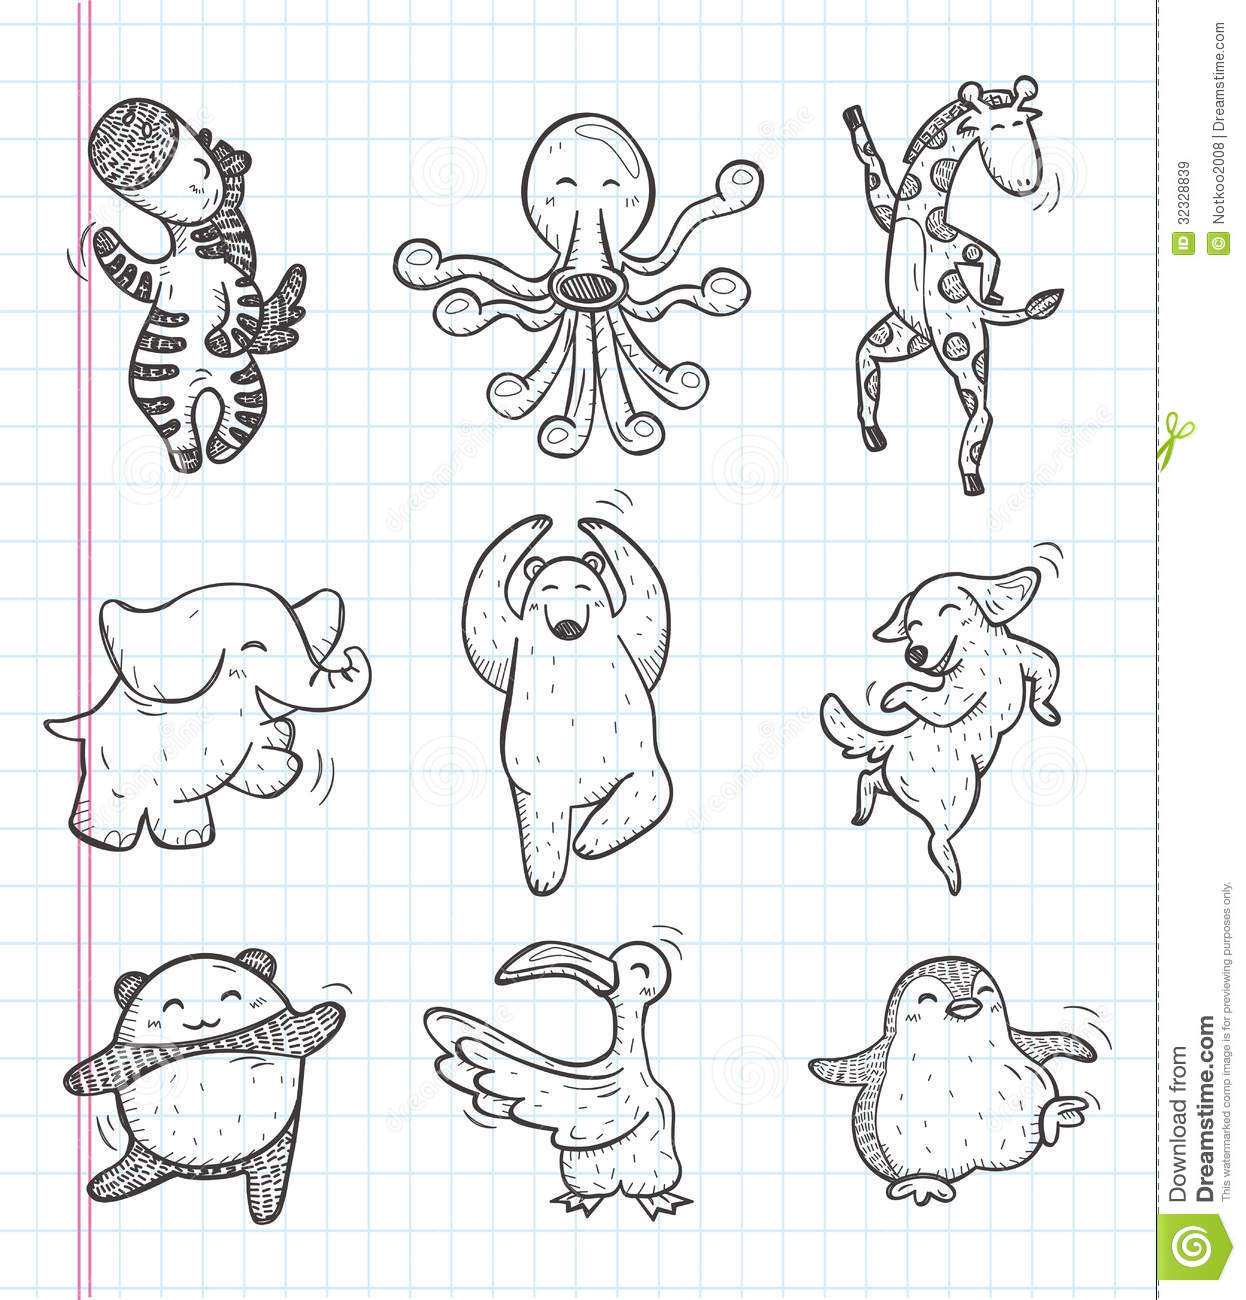 easy cute cartoon doodles